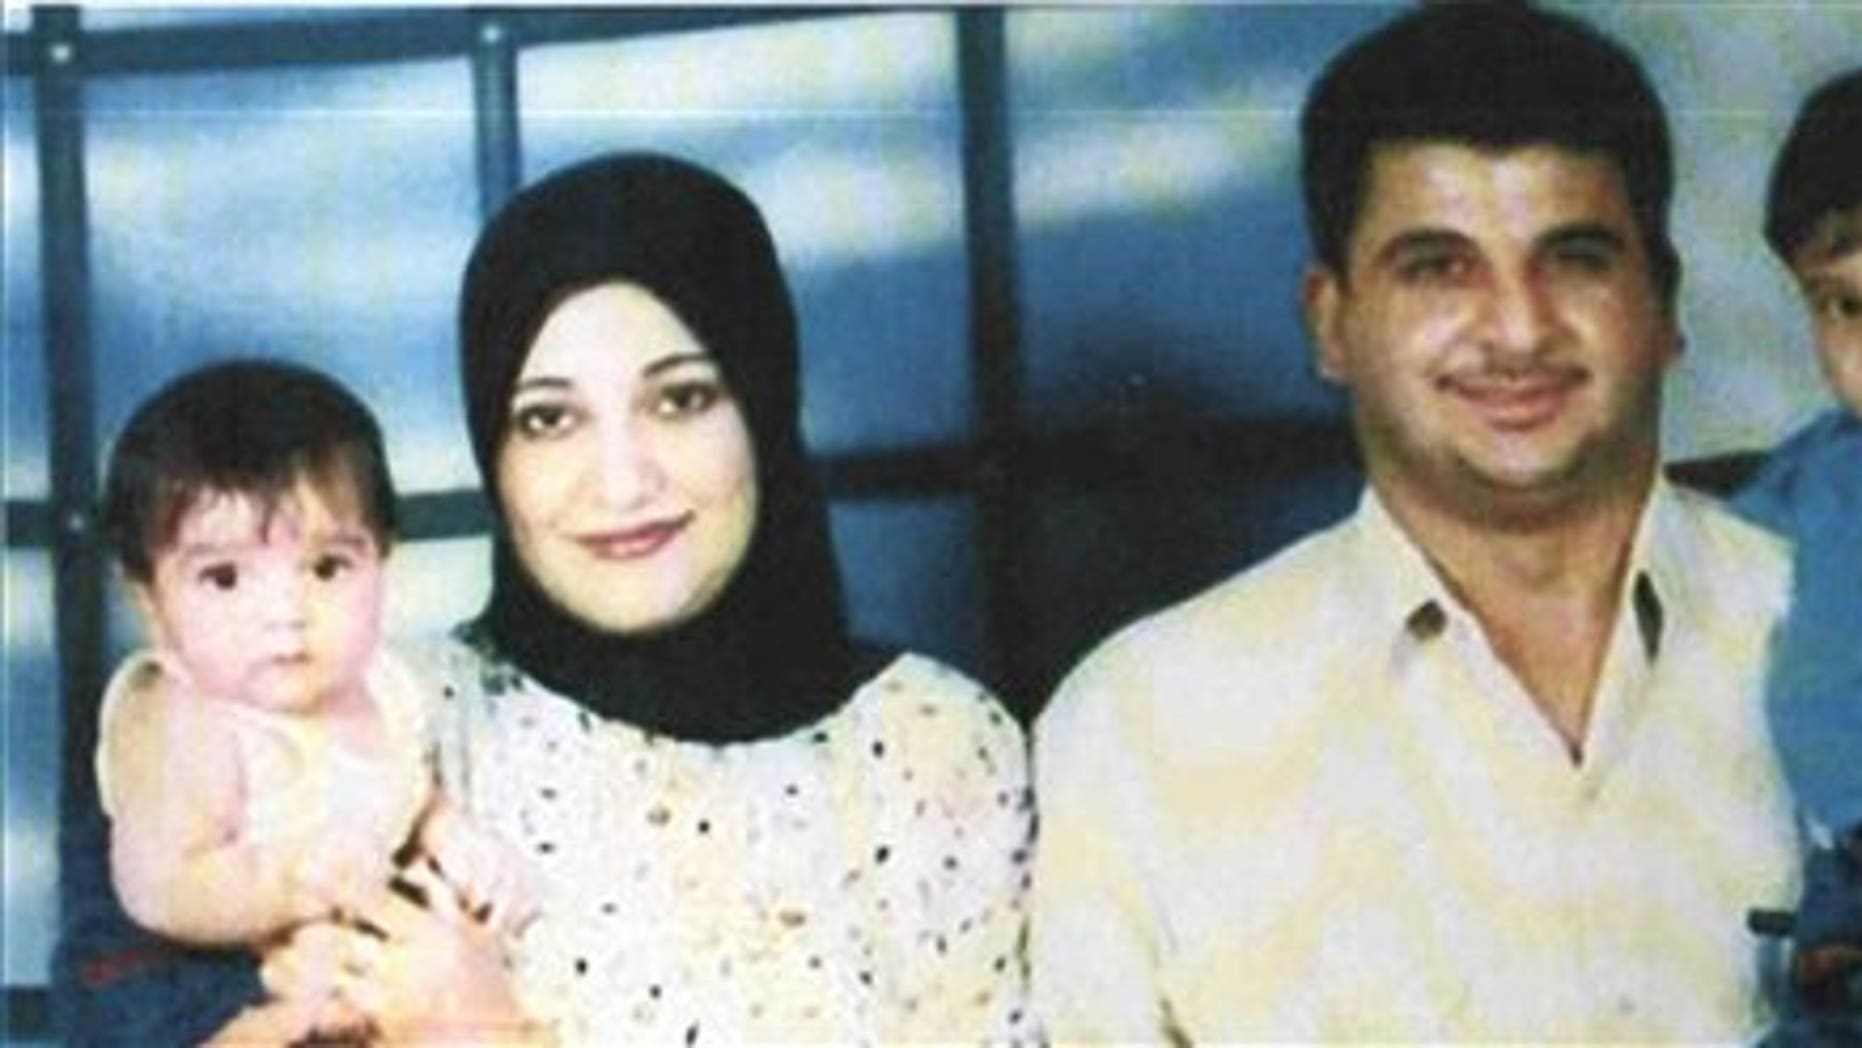 Undated handout photo made available by the Baha Mousa Public Inquiry shows Iraqi man  Baha Mousa and family.